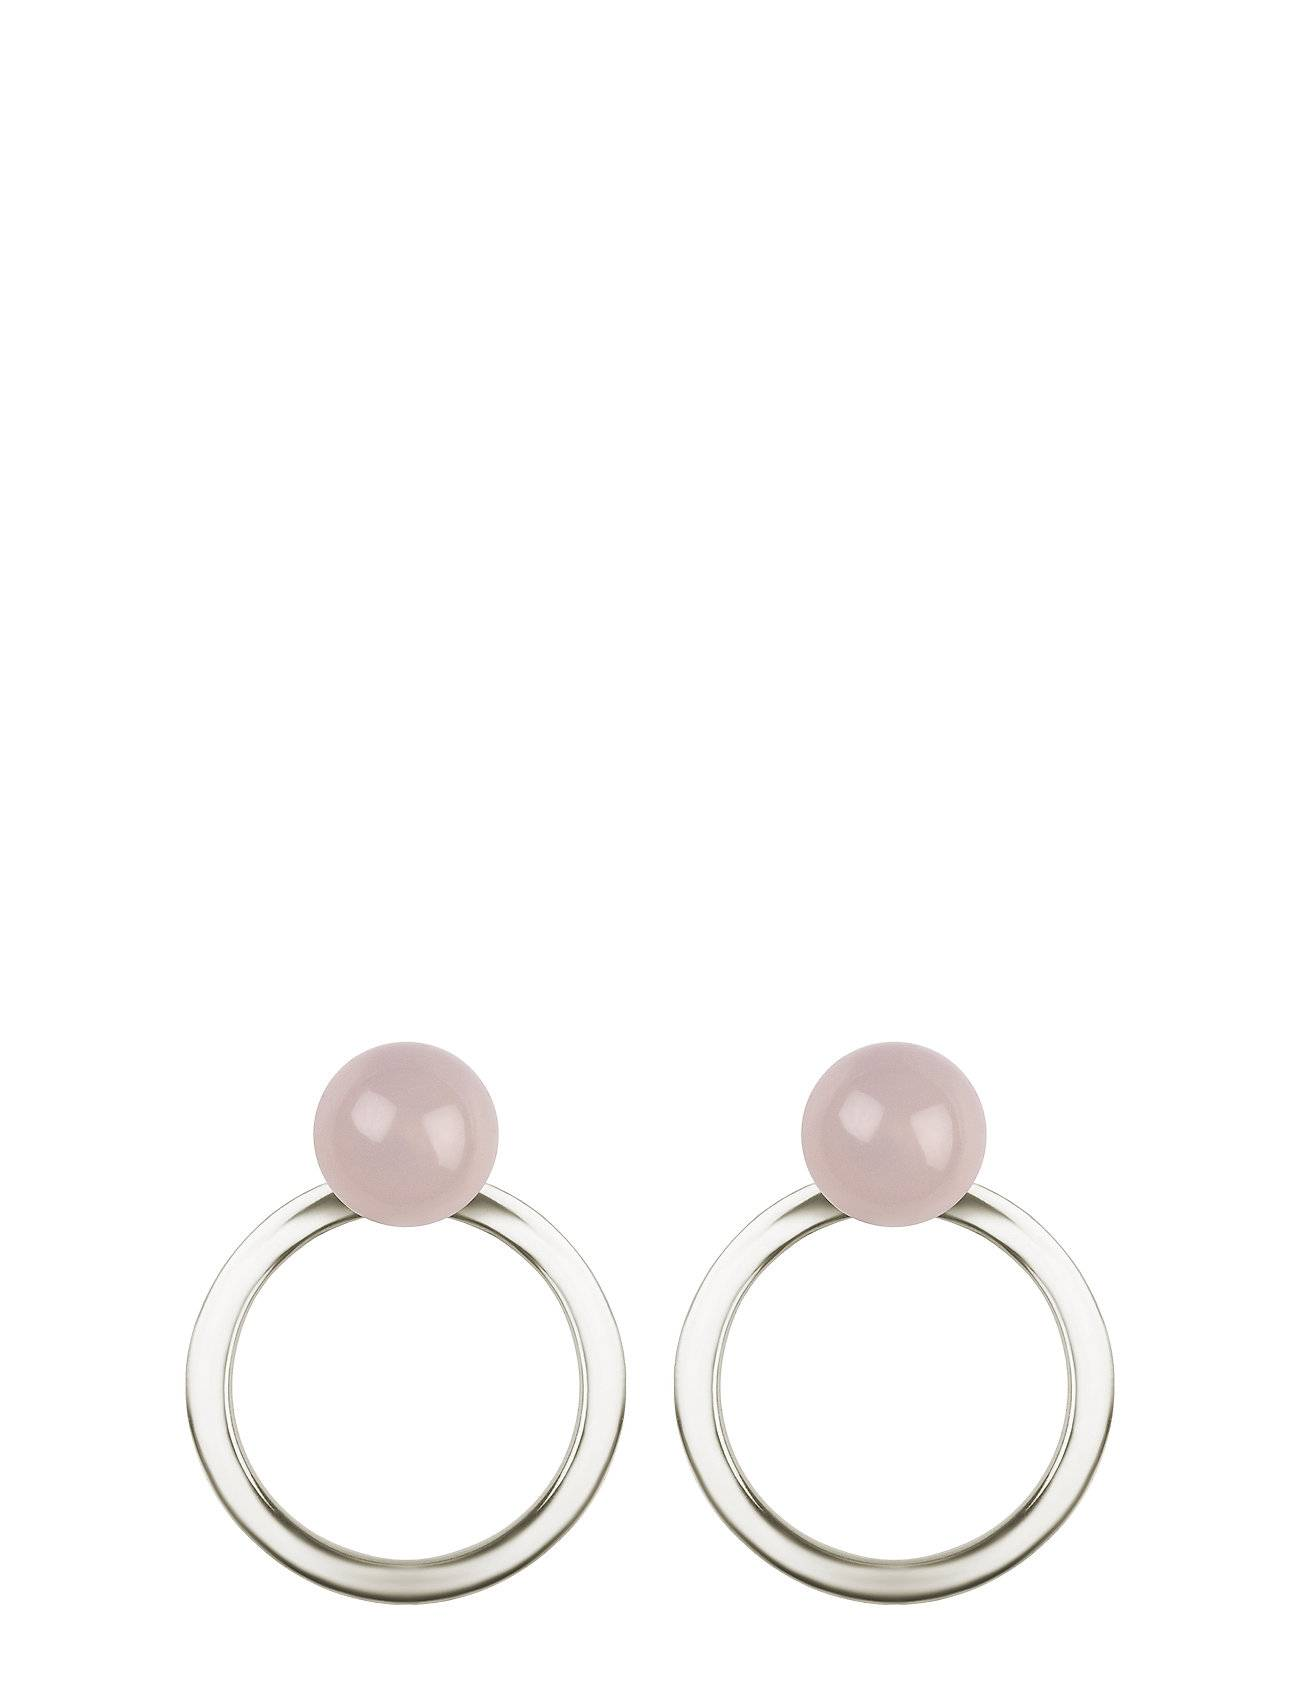 Syster P Planet Earrings Silver Rose